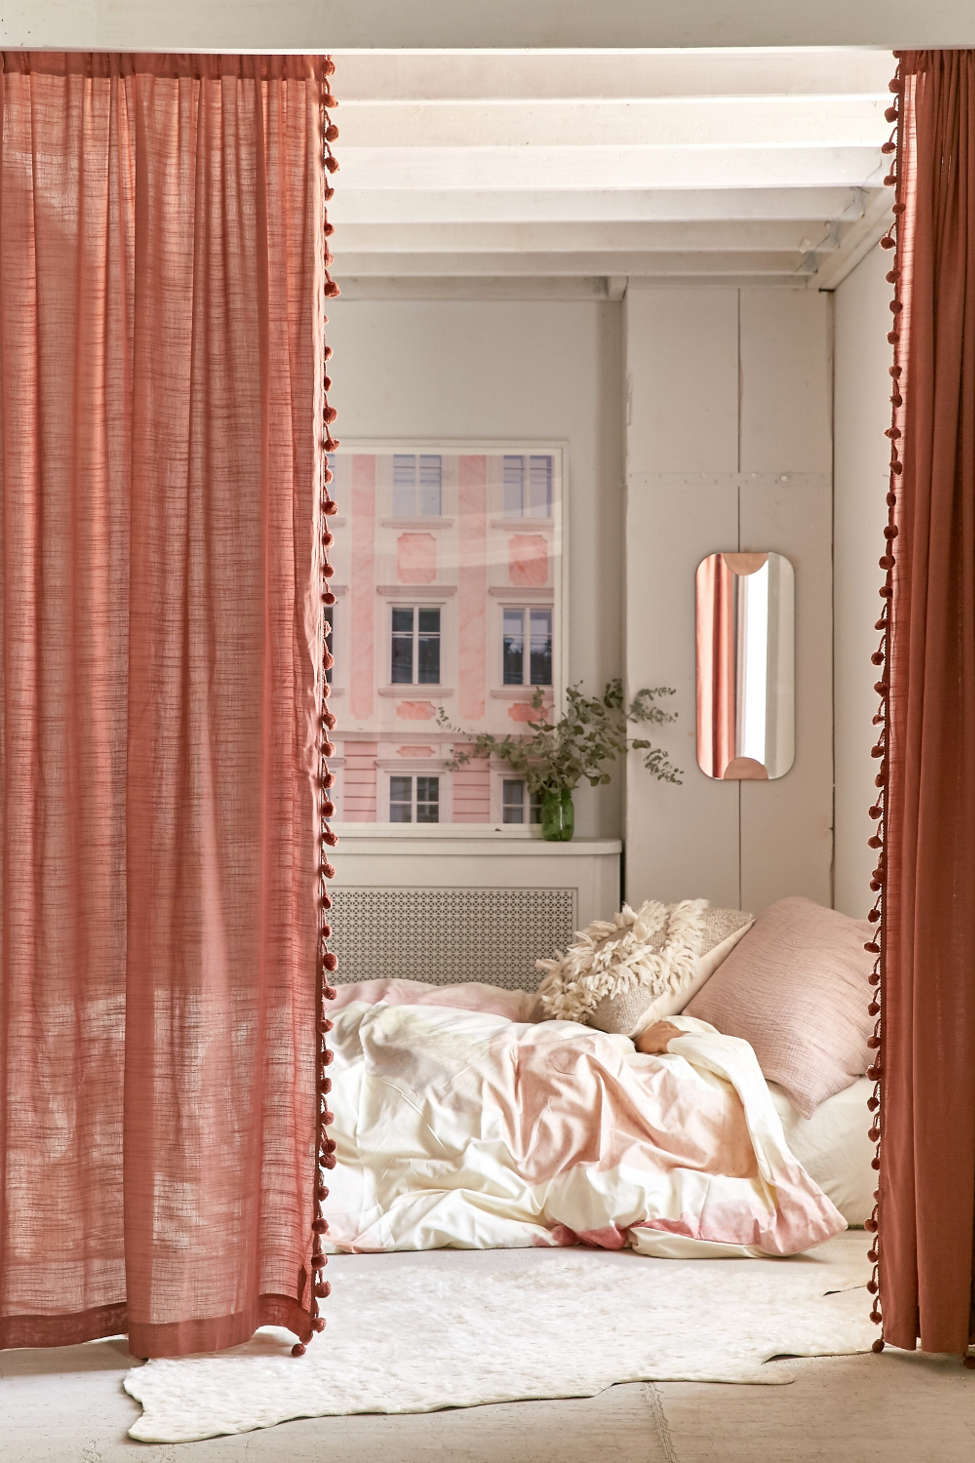 Slide View: 1: Pompom Curtain